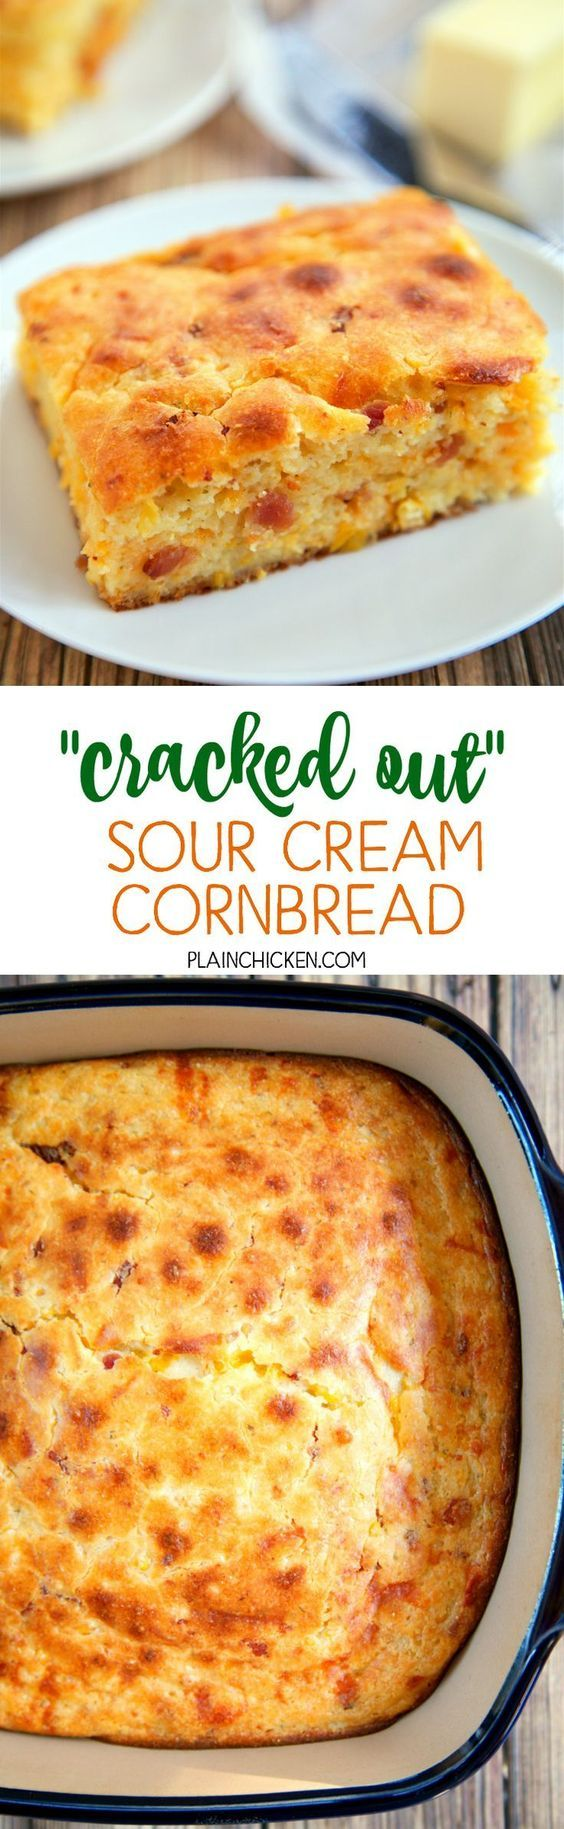 """""""Cracked Out"""" Sour Cream Cornbread - quick cornbread recipe kicked up with cheddar, bacon and Ranch. Cornmeal, sour cream, creamed corn, cheddar, bacon and Ranch. This is the most requested cornbread recipe in our house. Everyone loves it! It is super easy to make and tastes amazing!"""